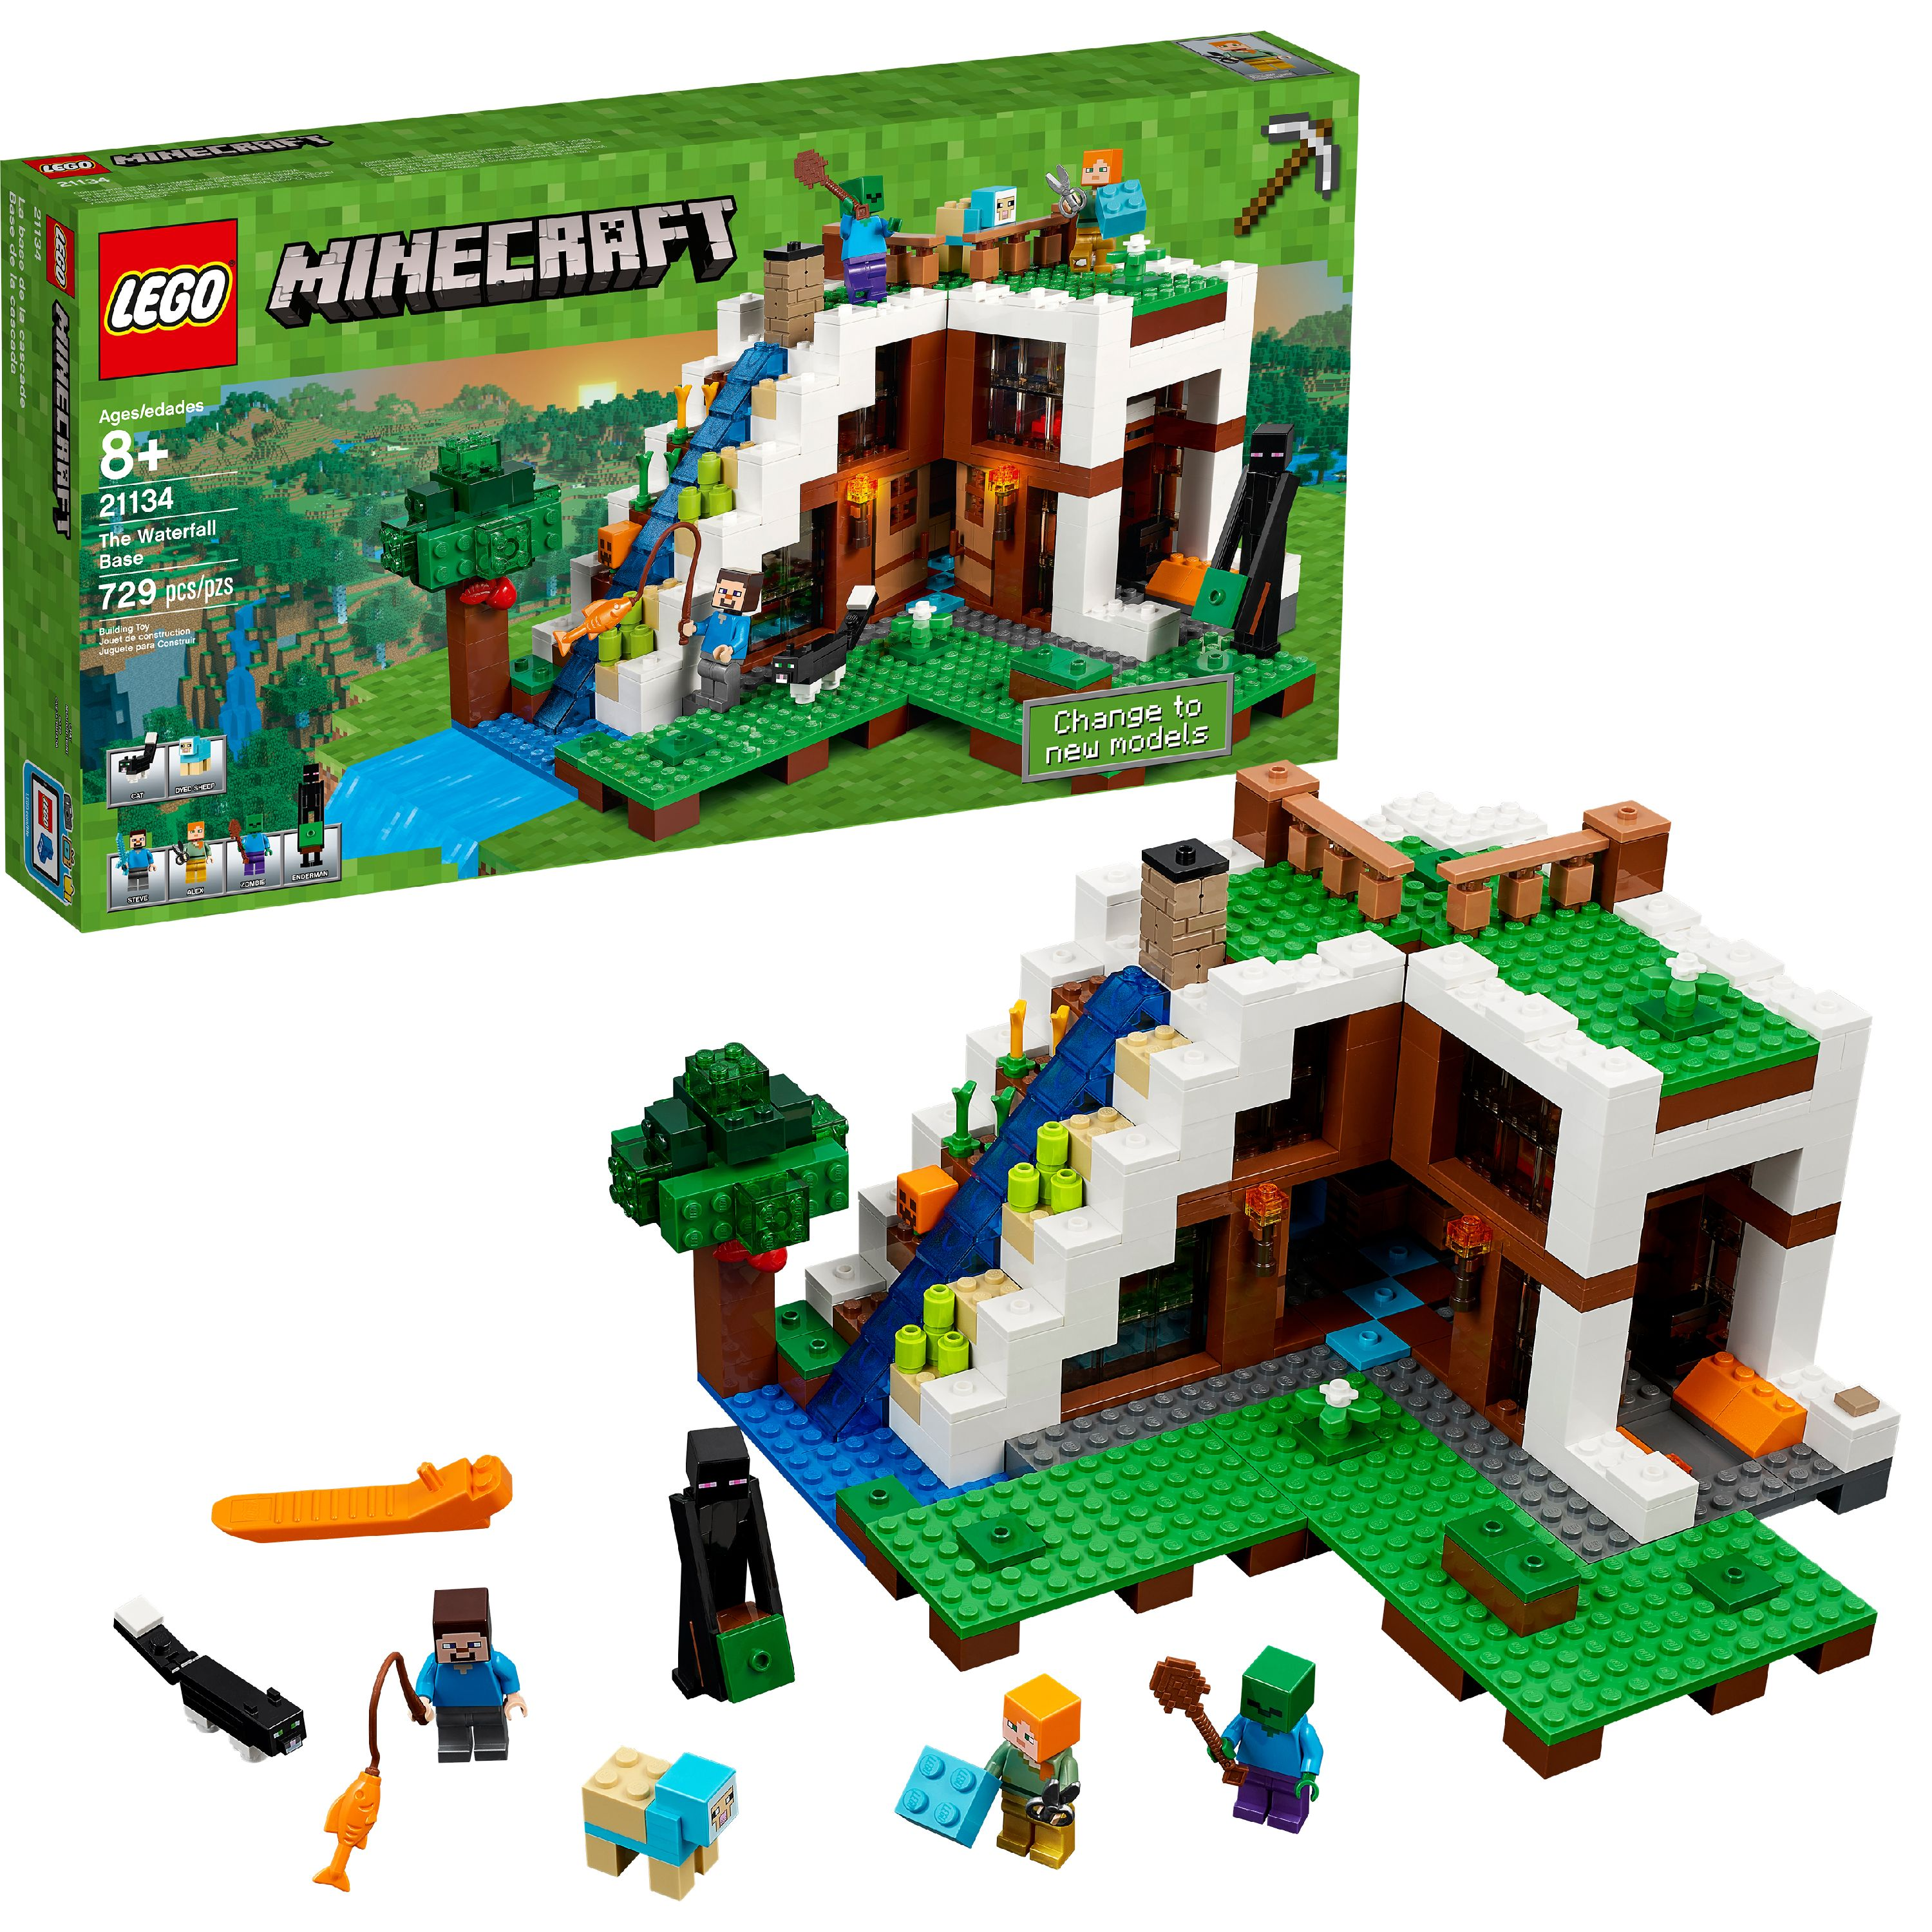 LEGO Minecraft The Waterfall Base 21134 (729 Pieces)